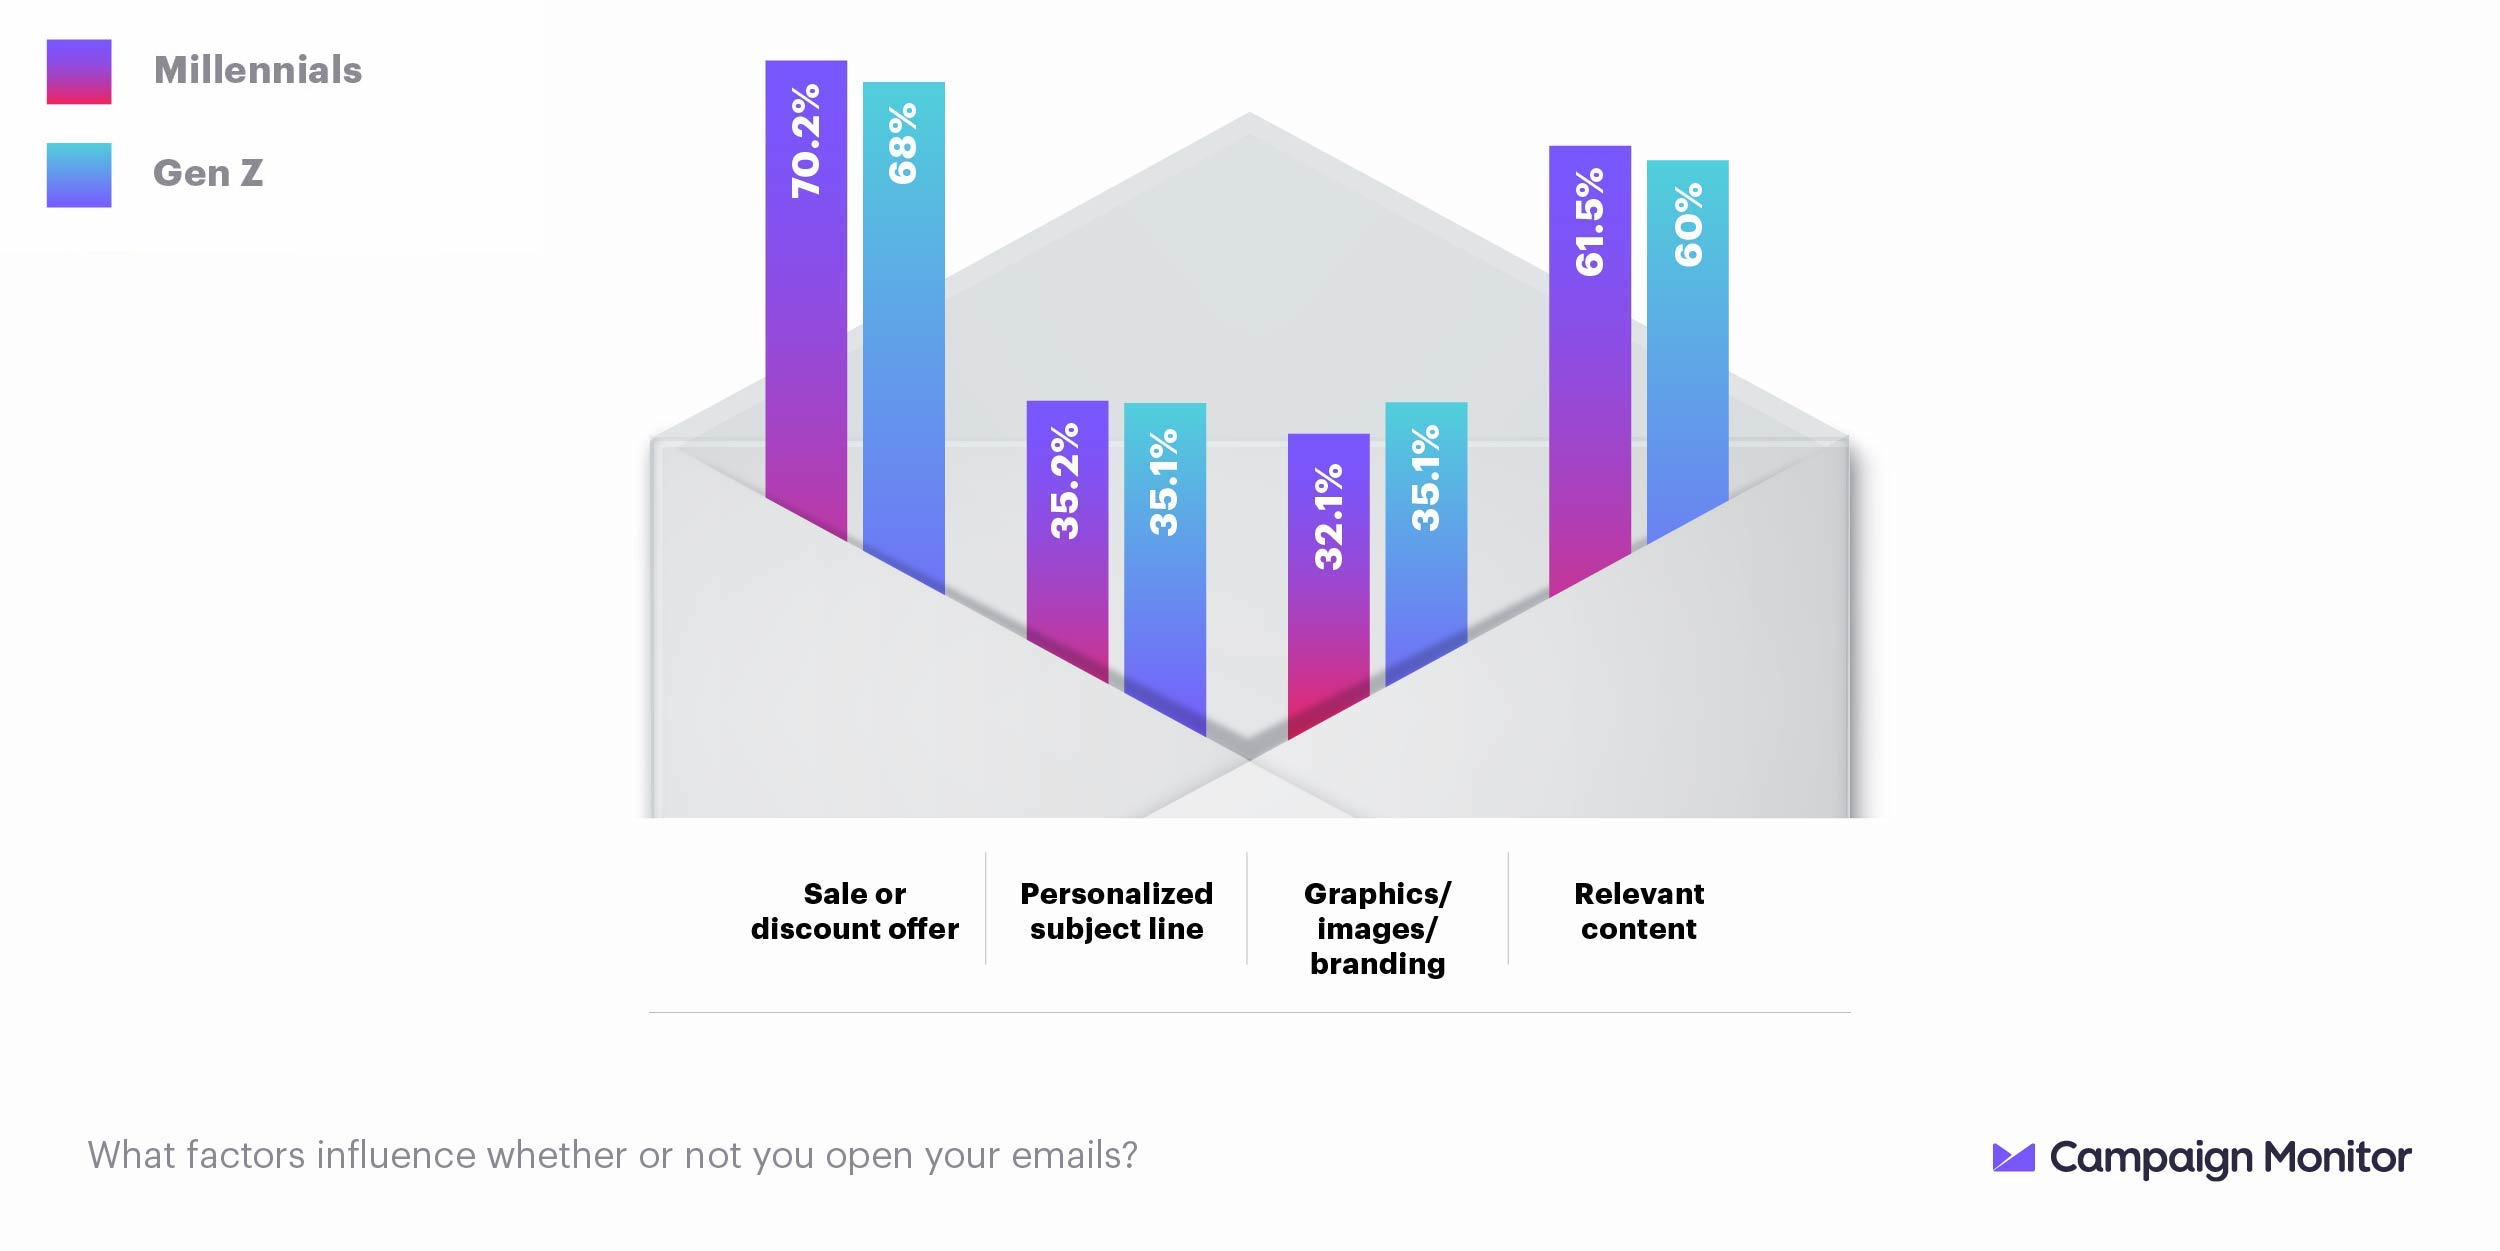 asking millennials and Gen z what factors influence email opens, discounts and relevant content are most enticing